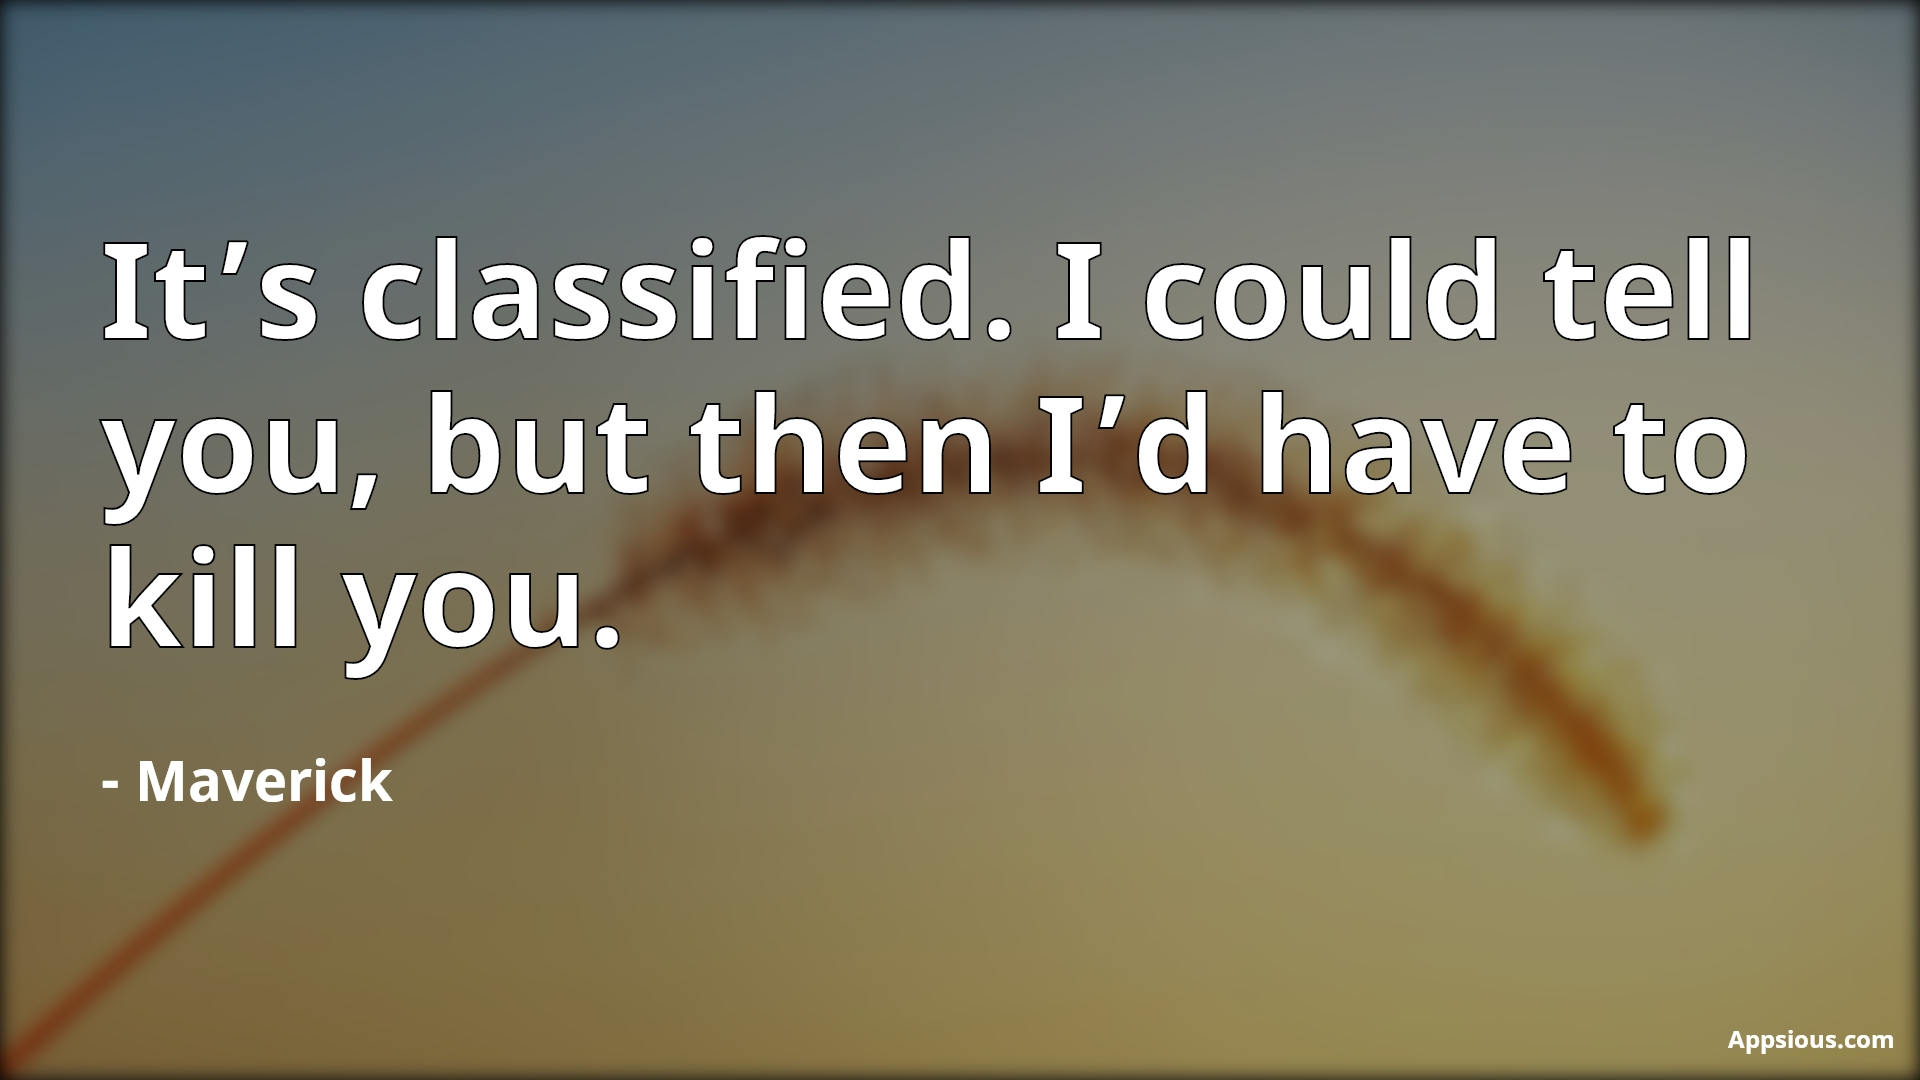 It's classified. I could tell you, but then I'd have to kill you.